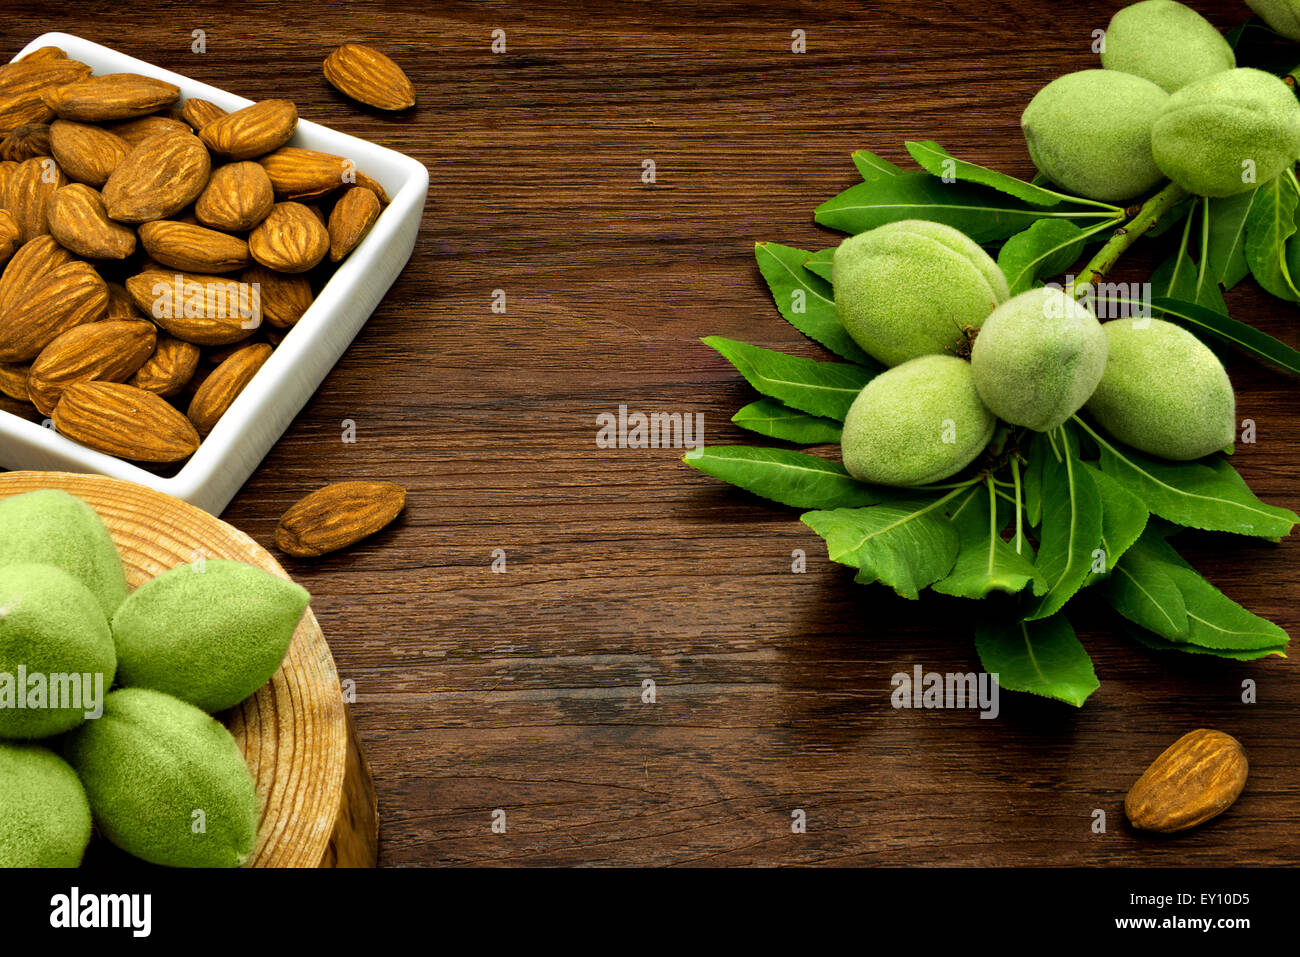 Almond branches and nuts on a wooden table. Stock Photo